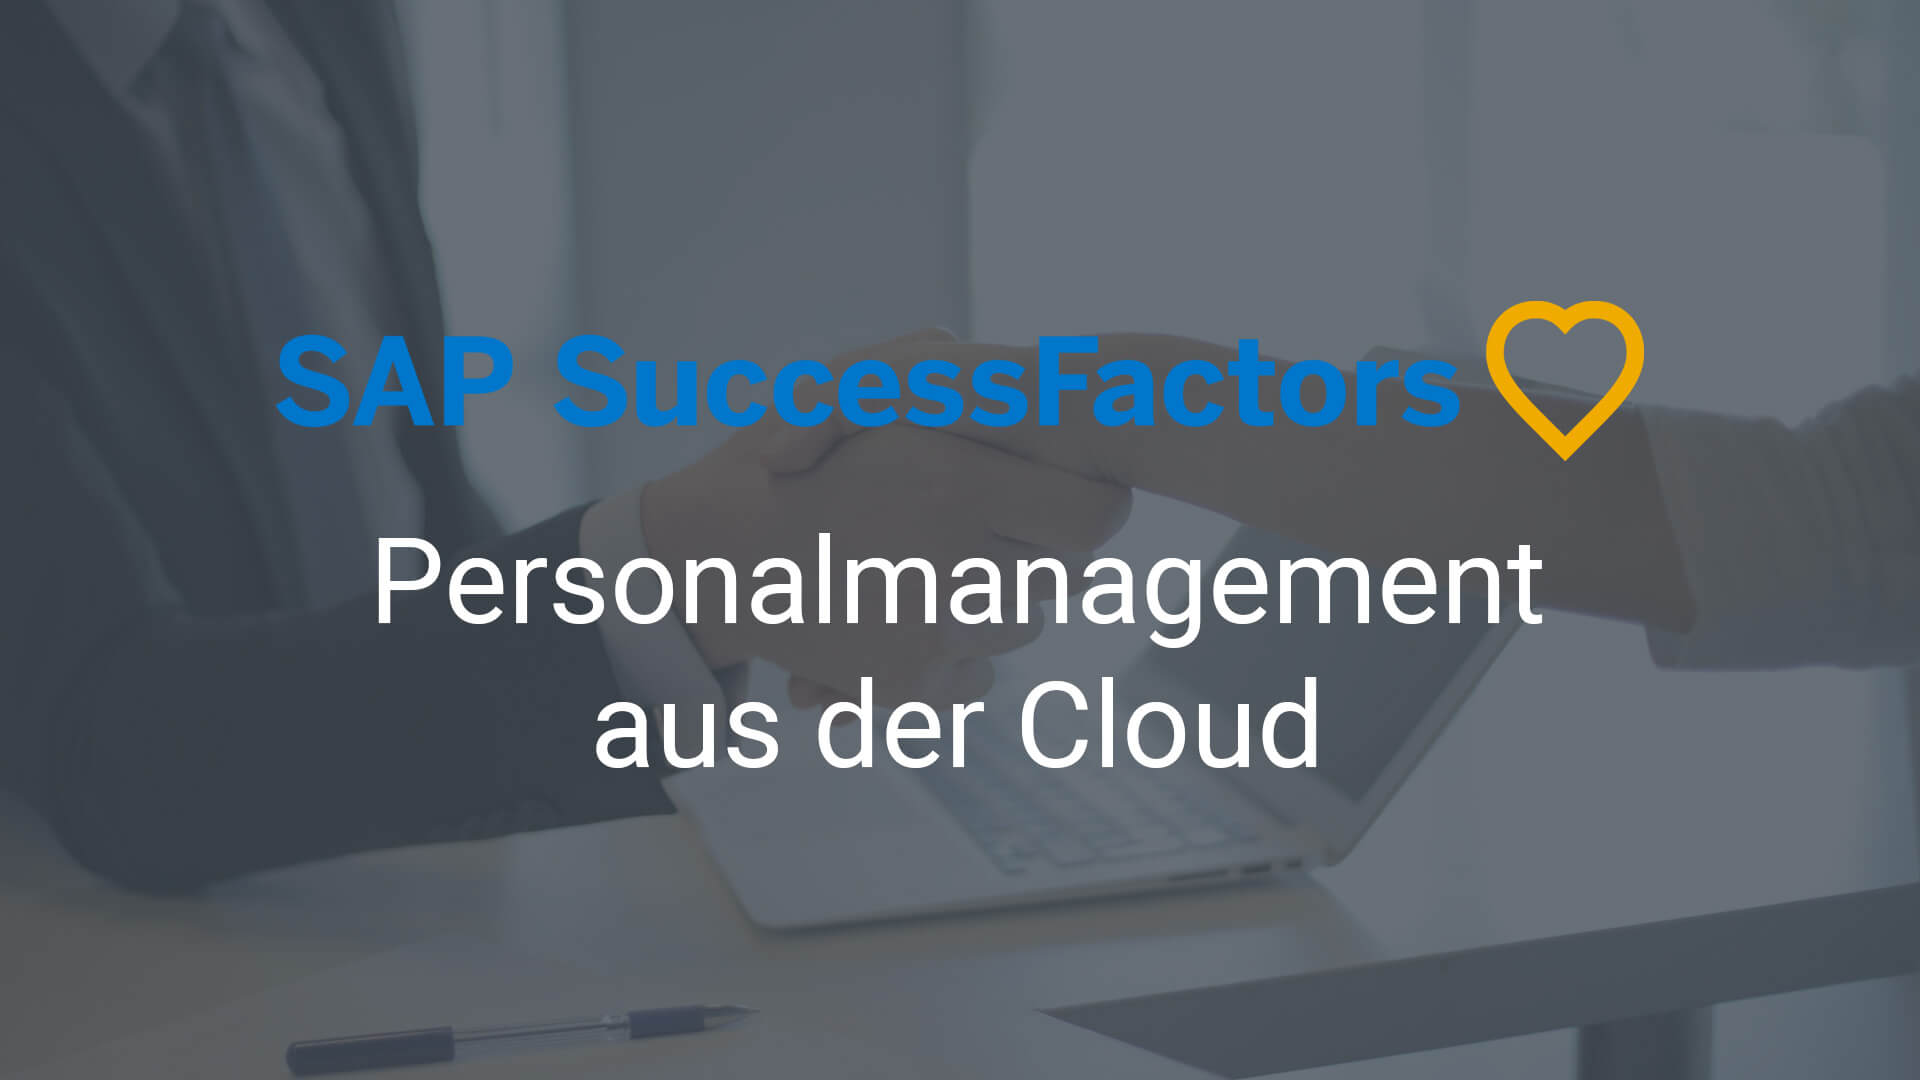 SAP SuccessFactors_Personalmanagement aus der Cloud